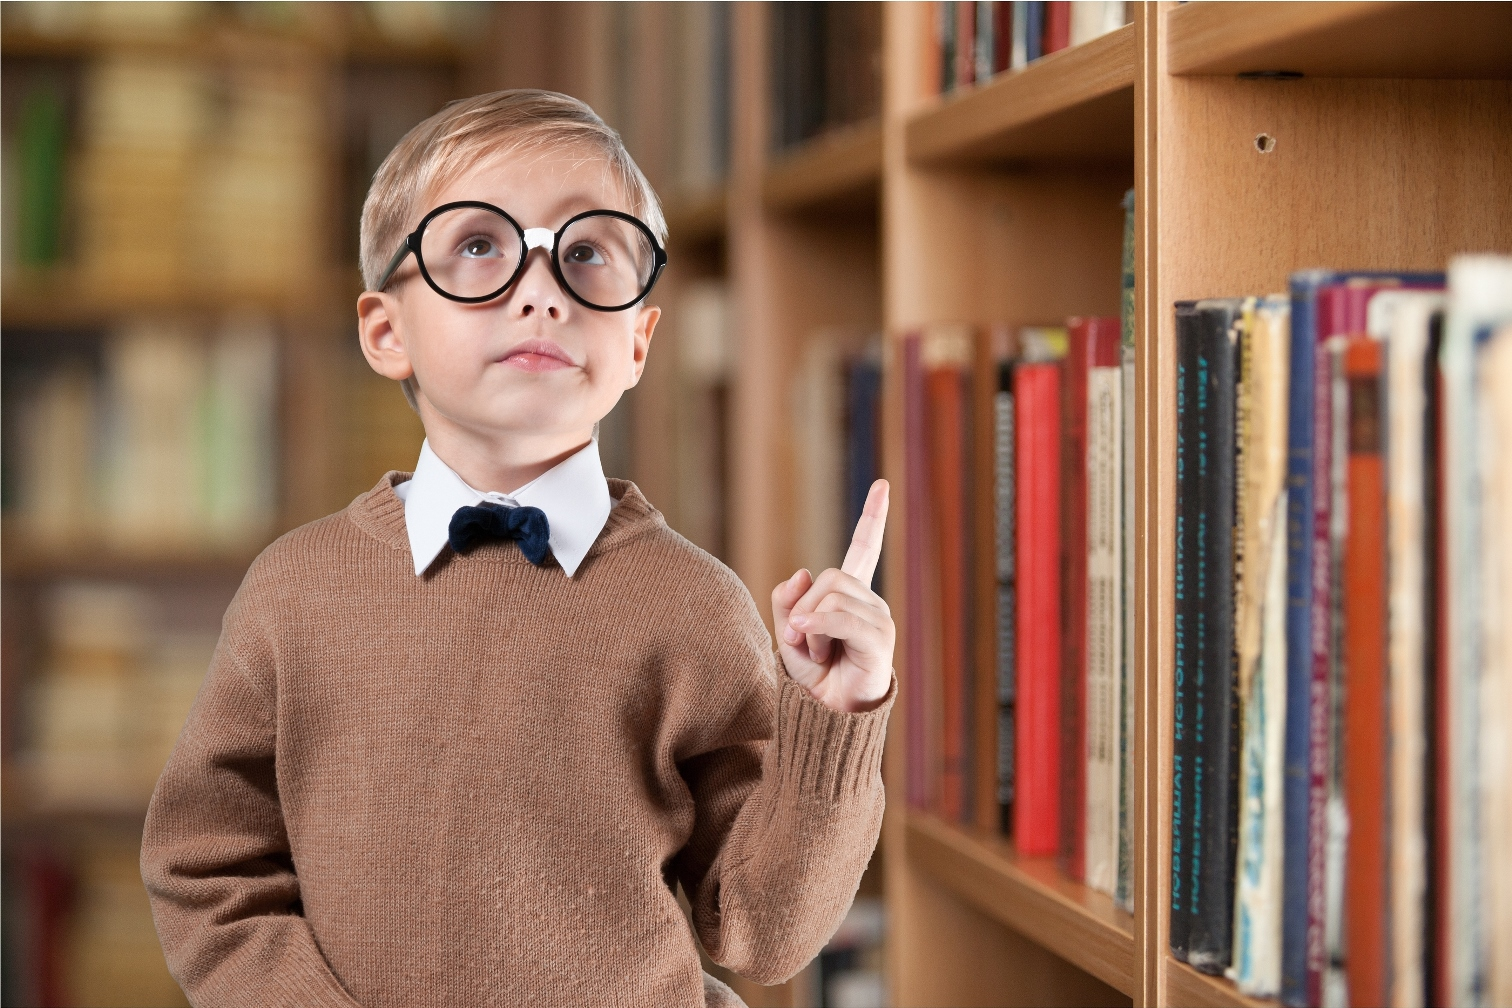 gifted child - intellectual skills